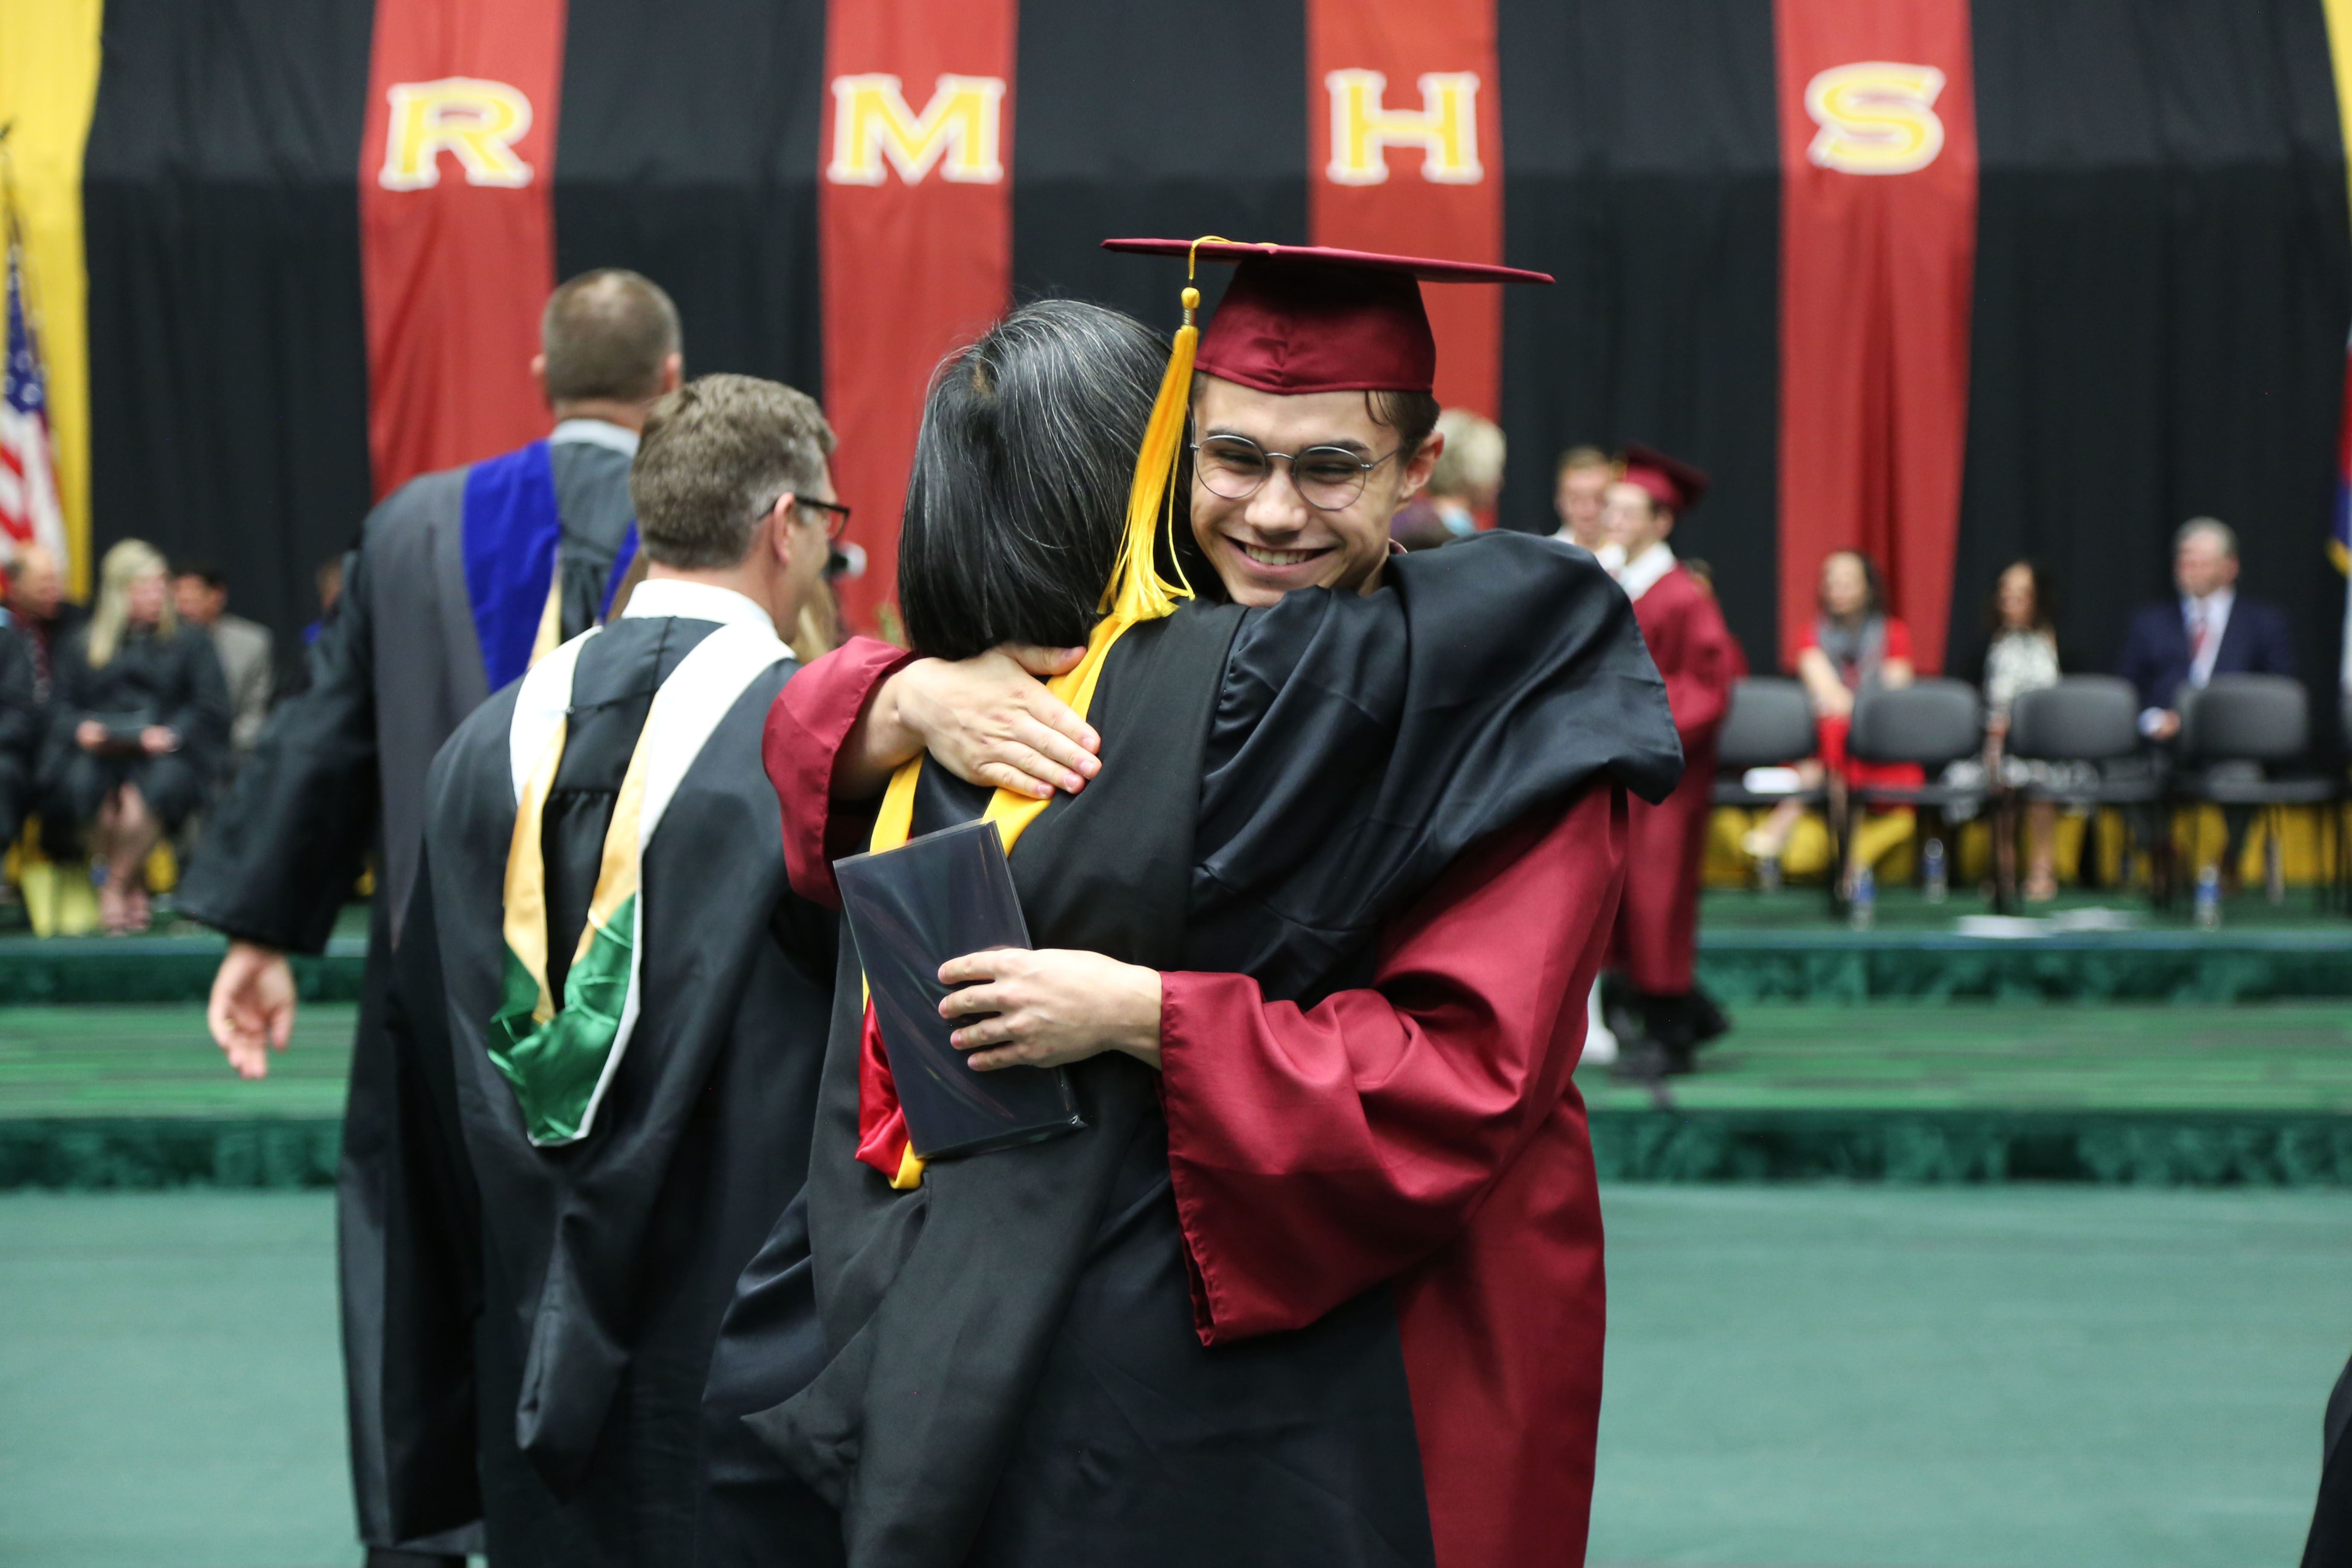 A Rocky grad hugs a teacher.